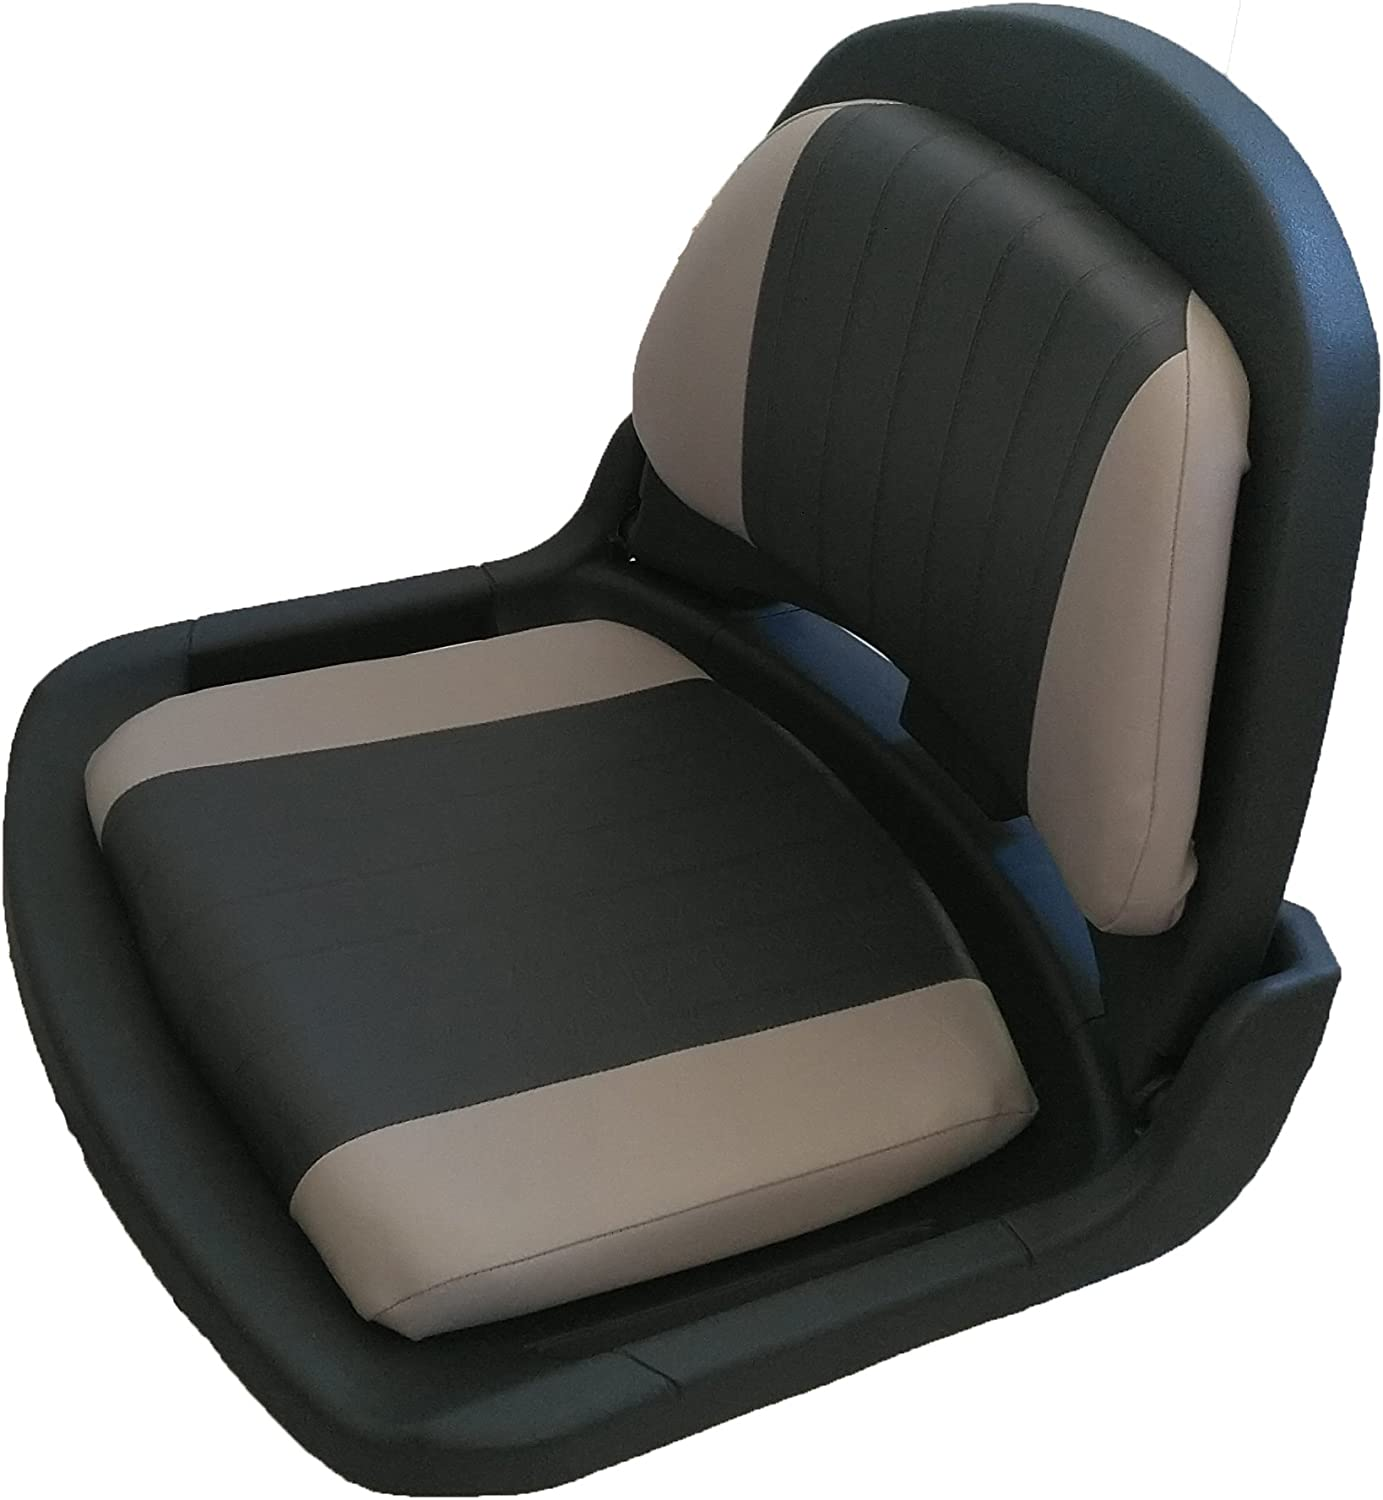 Clam Shell Fishing Seats Charcoal and Gray